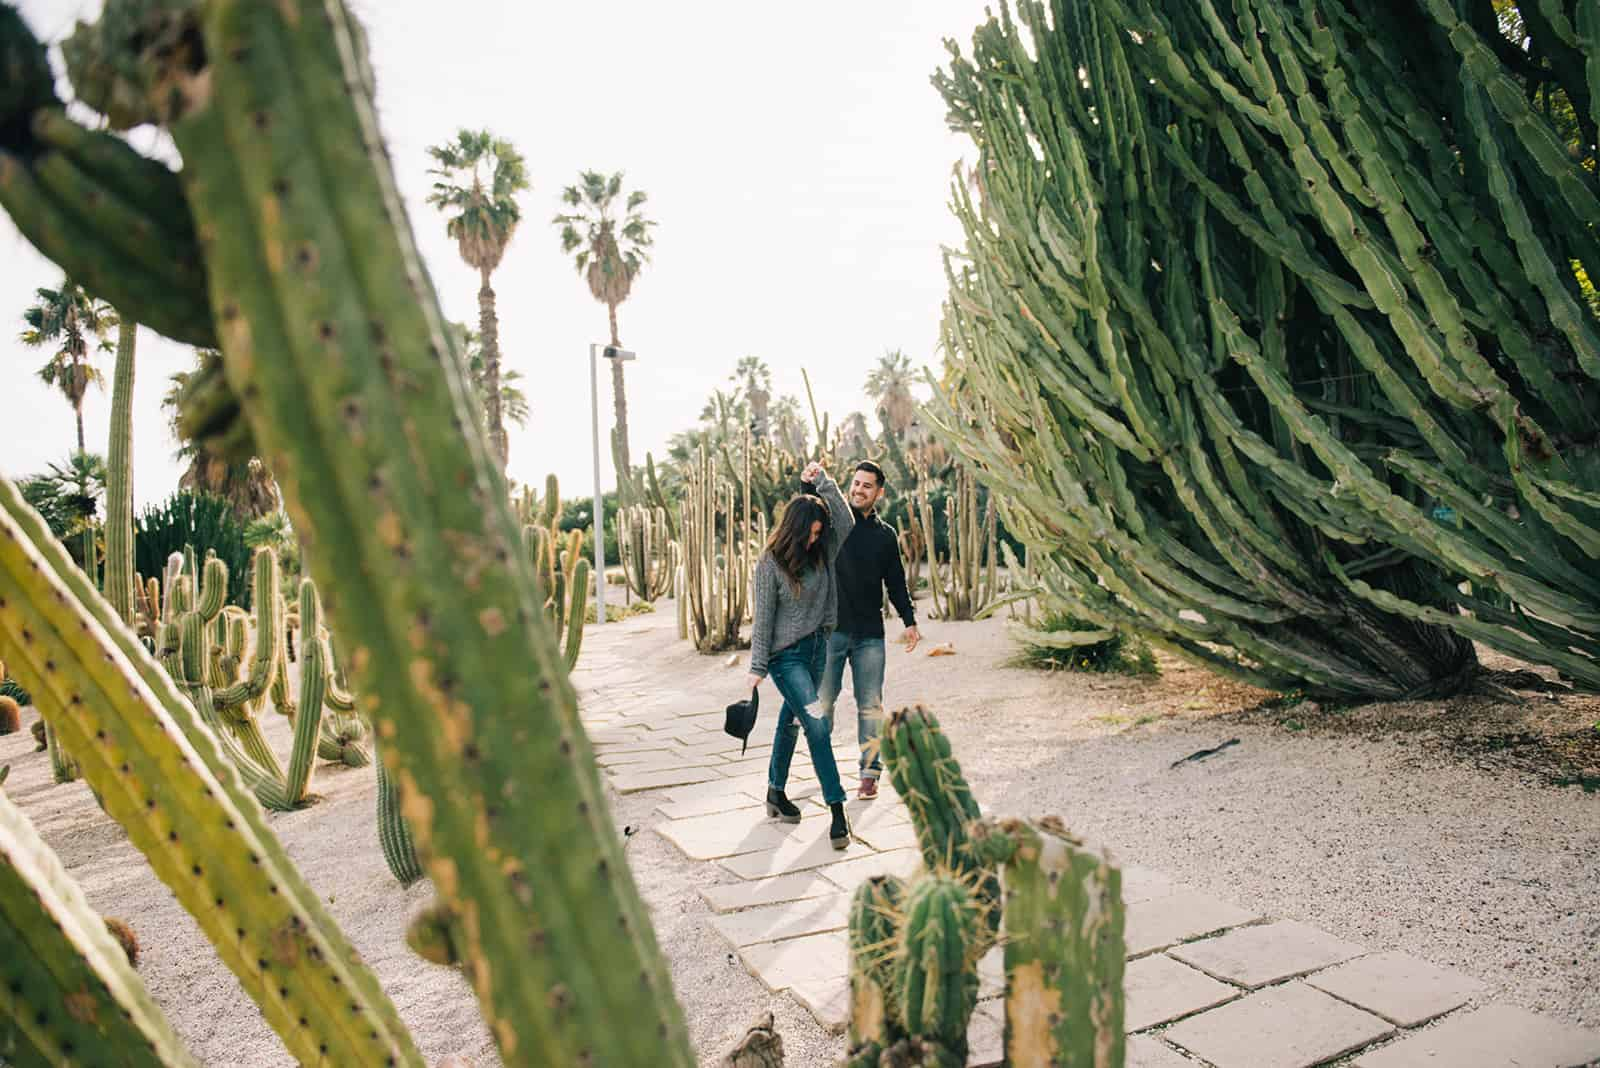 happy couple dancing among the cactus plants during daytime